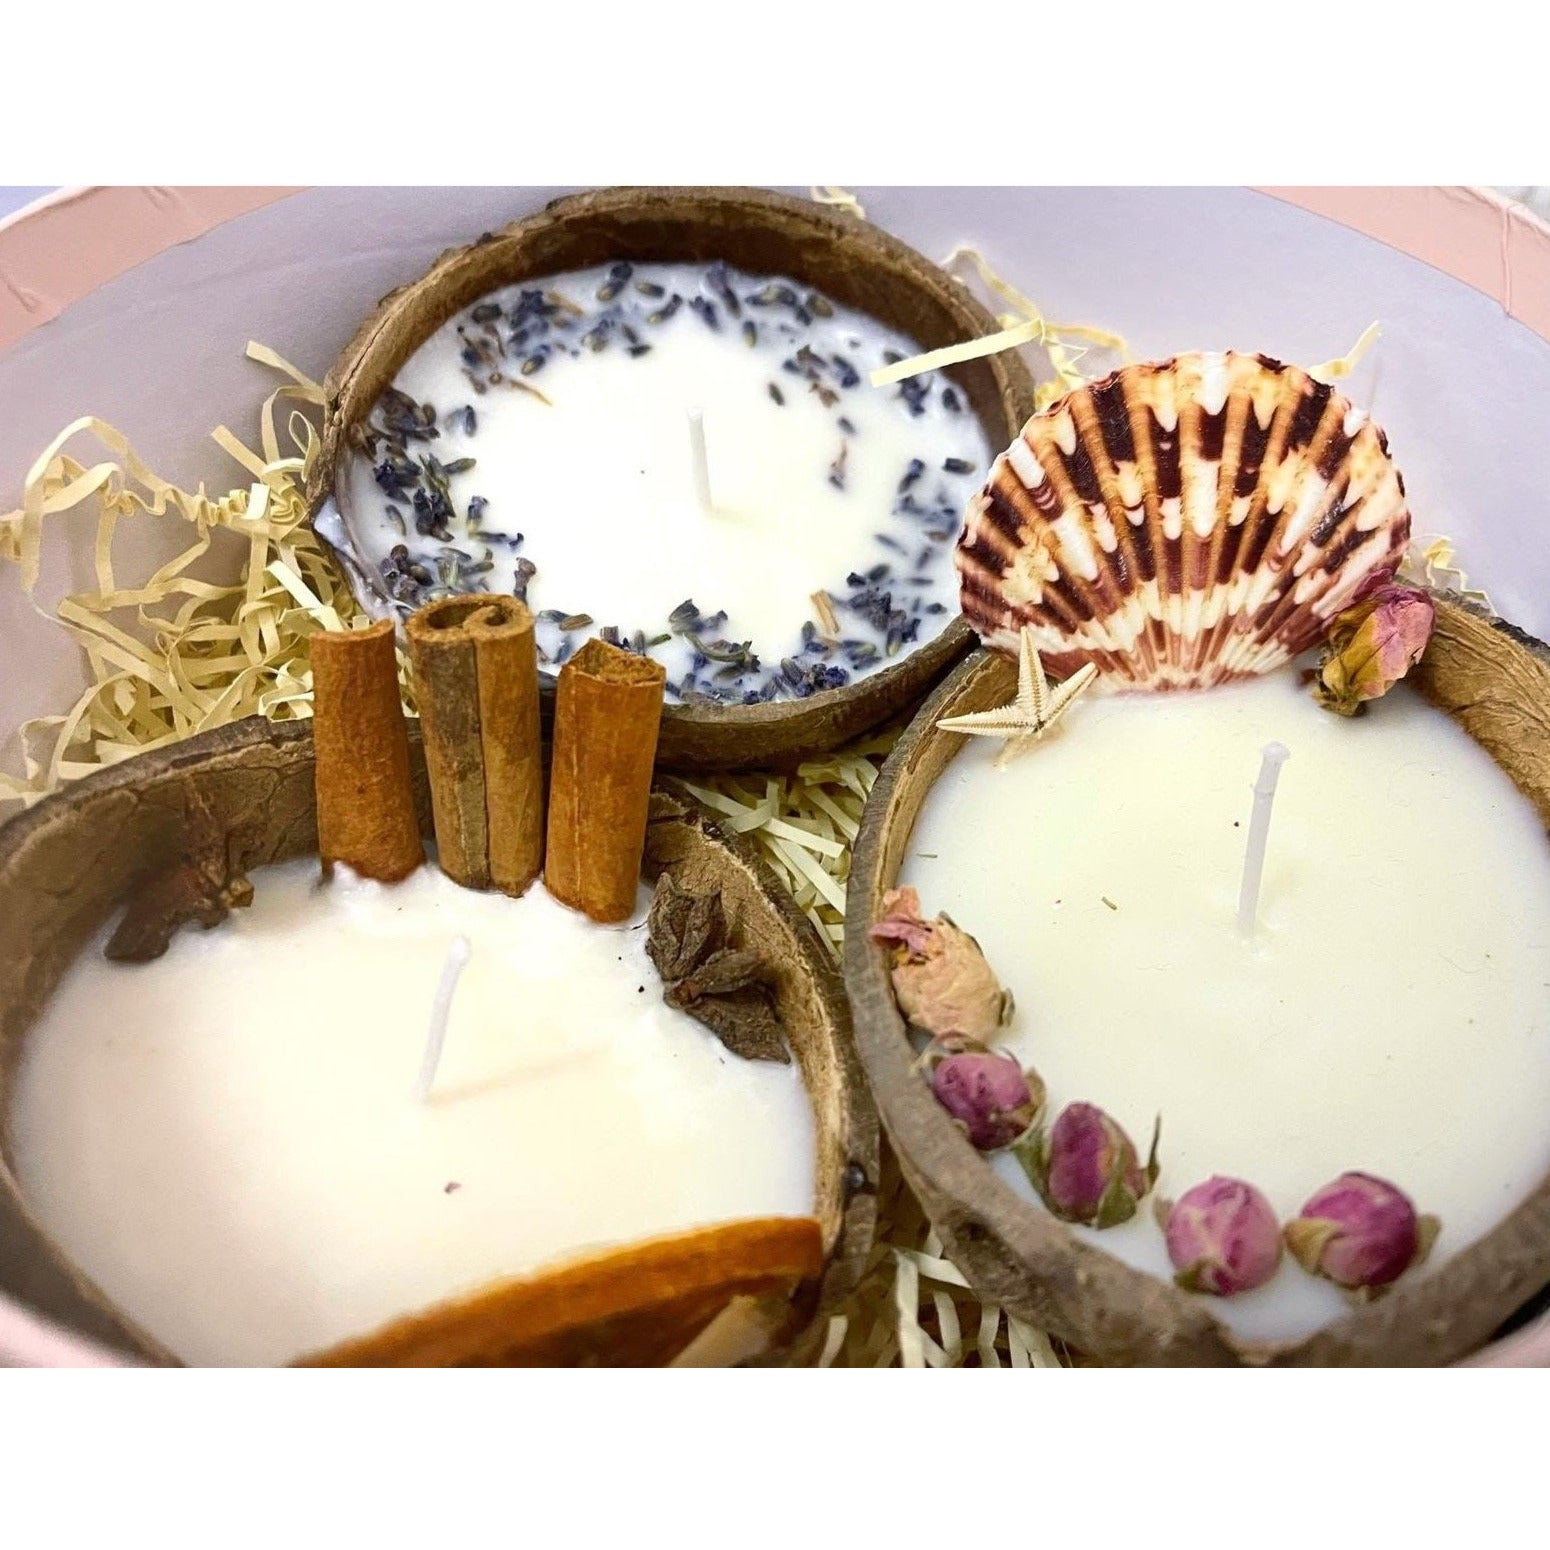 3 Coconut Candles Gift Set with Coconut & Vanilla, Lavender, Cinnamon&Orange gentle scented Soy candles in coconut shell, PRE-ORDER delivery around 15th of December - natoorio